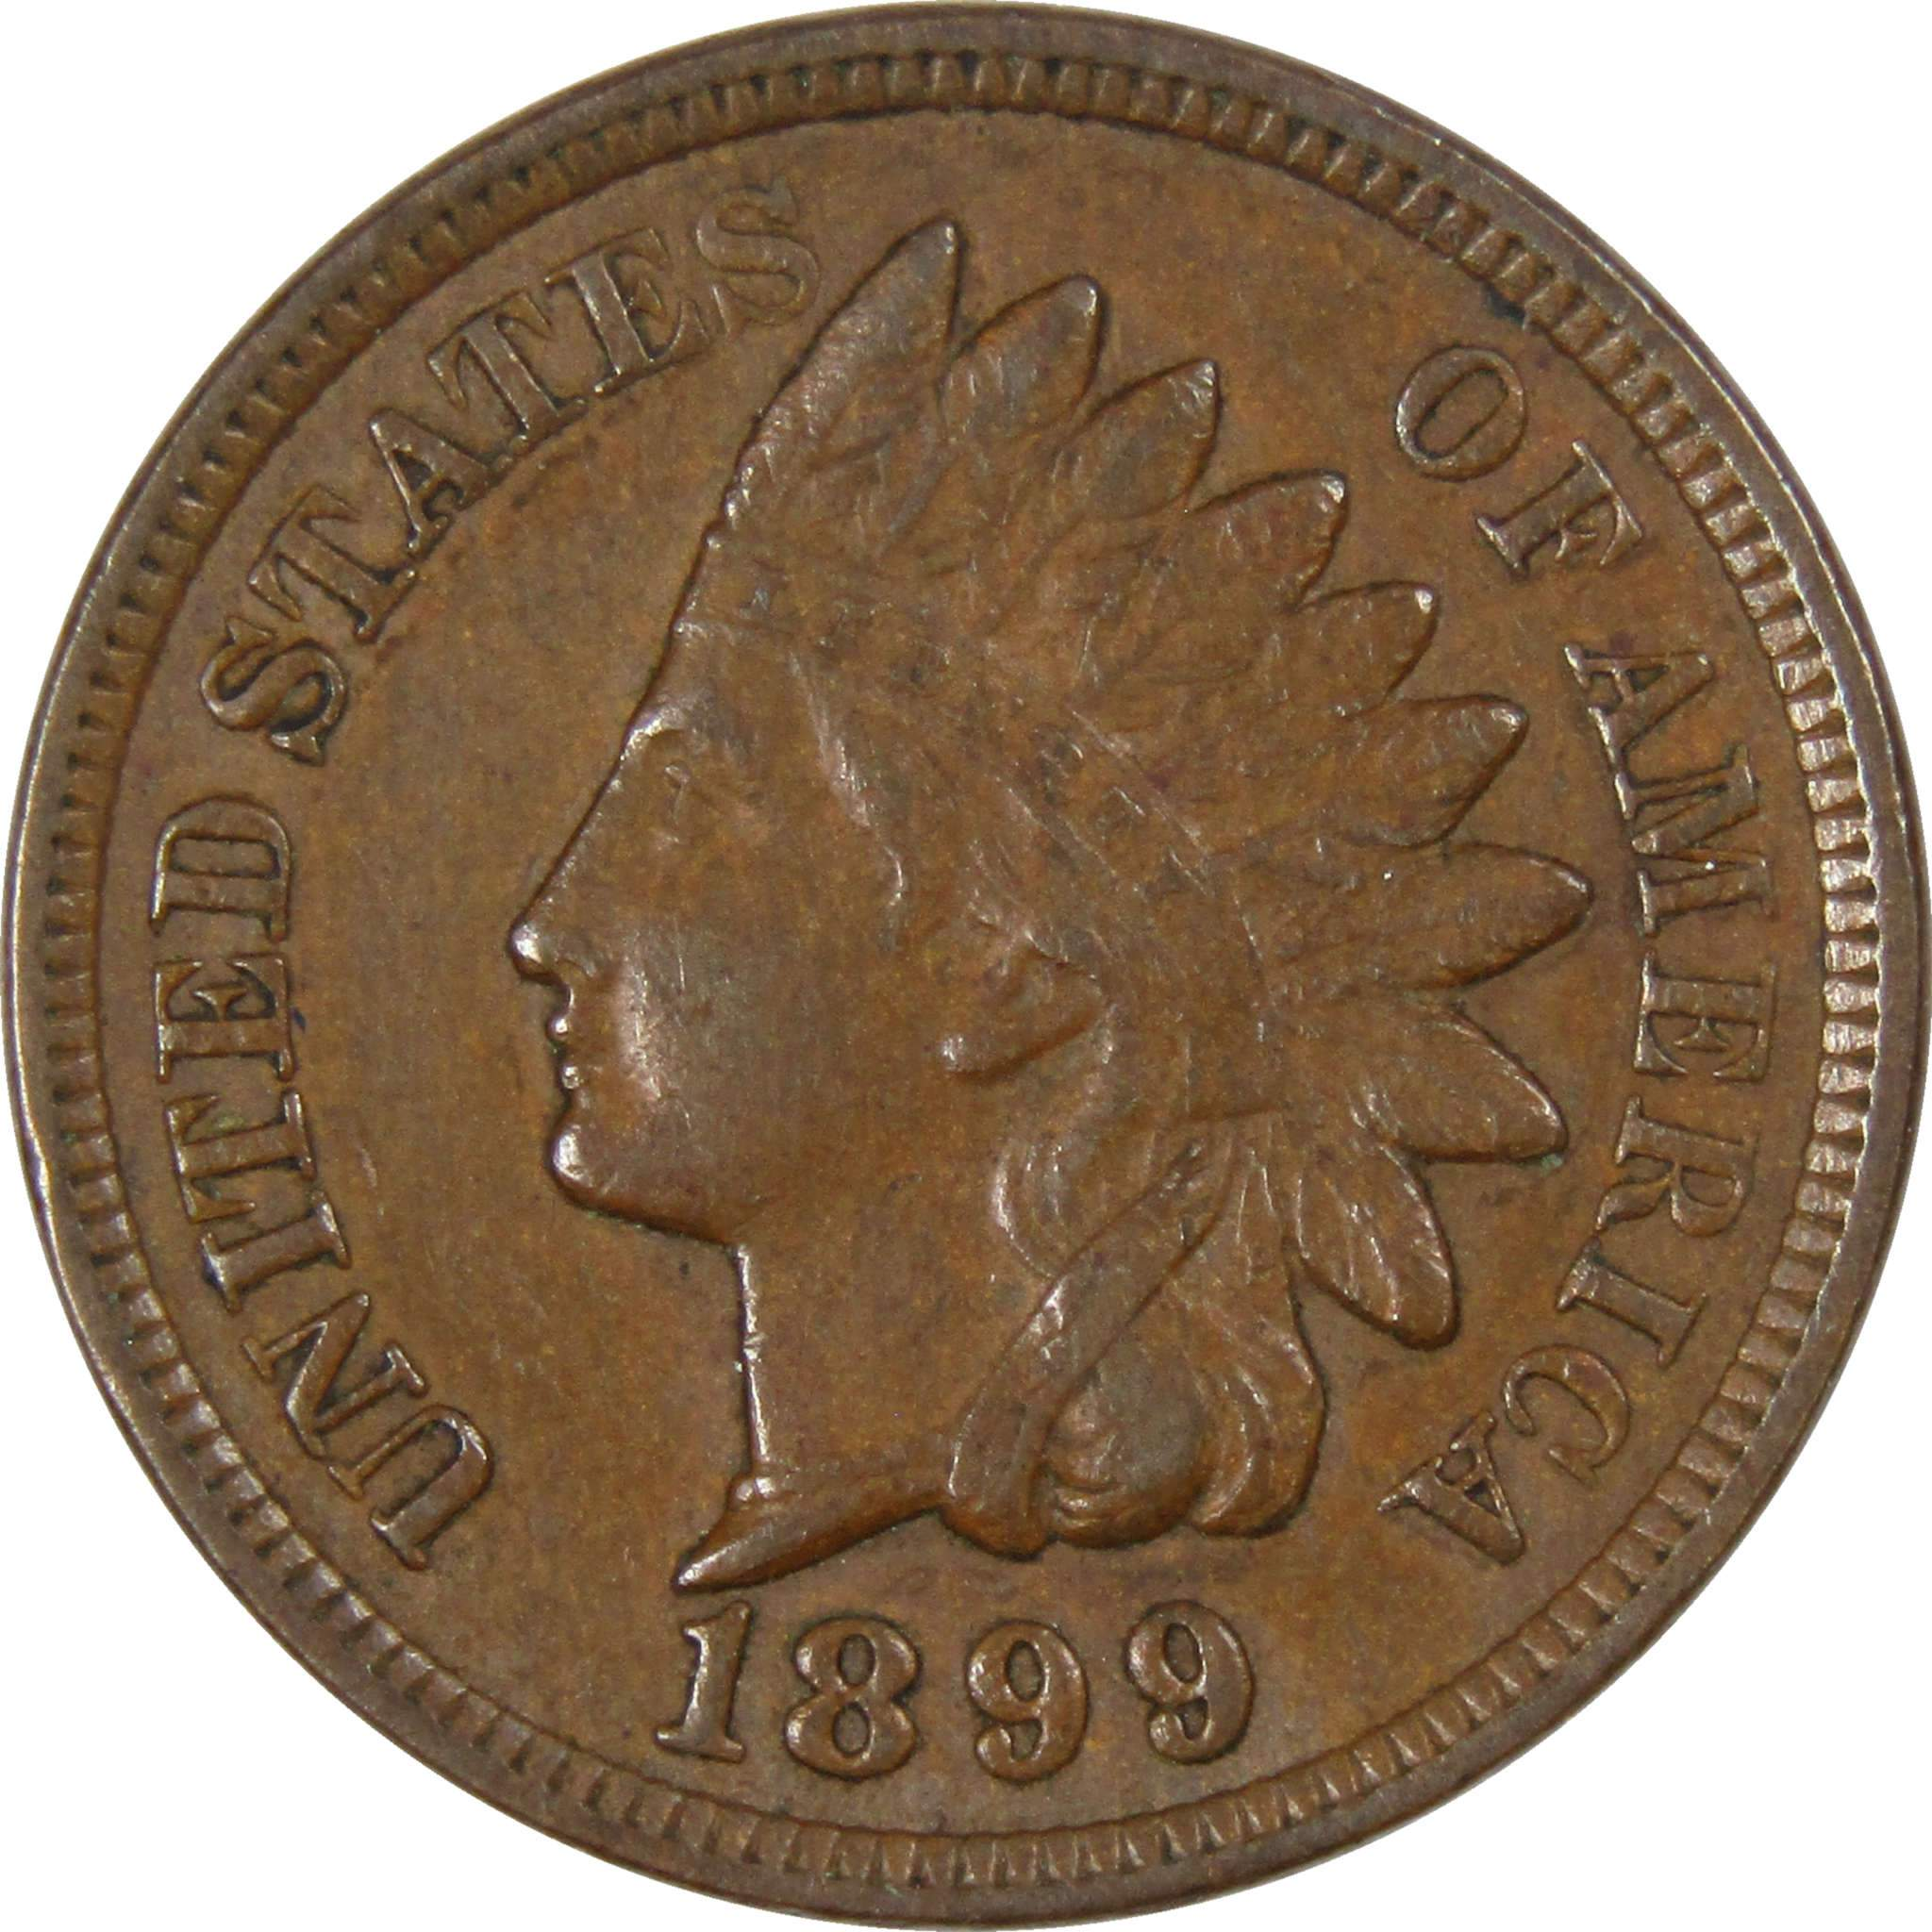 1899 indian head penny how much is it worth